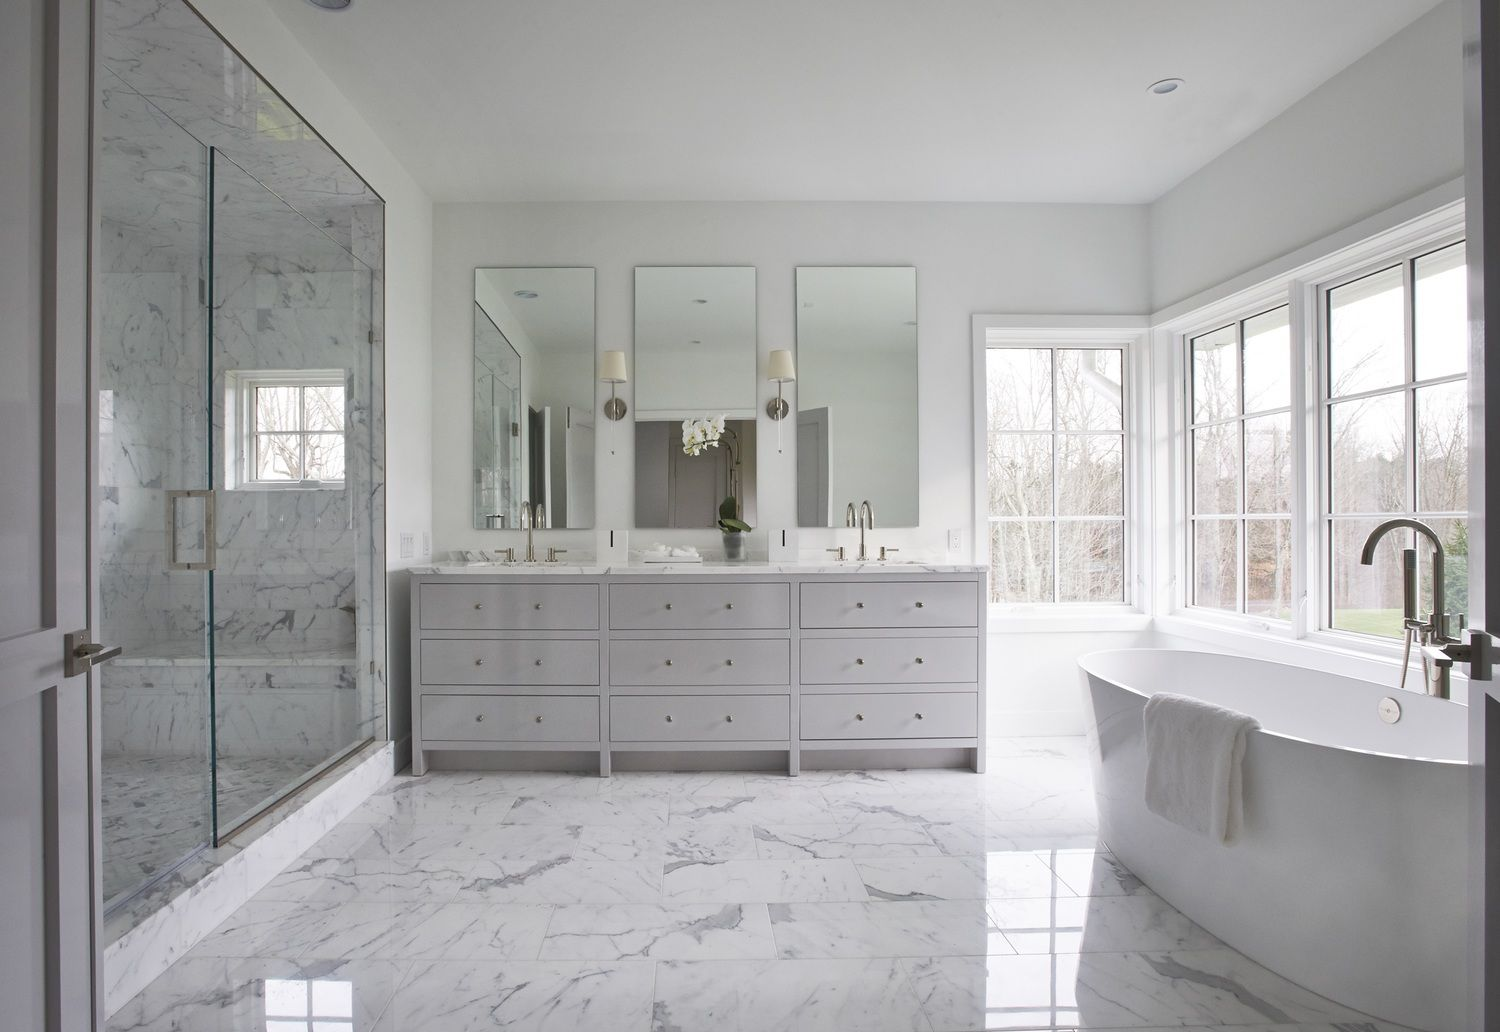 Cavalry Master Bathroom.jpg | Natale-Bathrooms | Pinterest | Kitchen on master bath remodeling, master status, master spas, master bedrooms, master bath sinks,